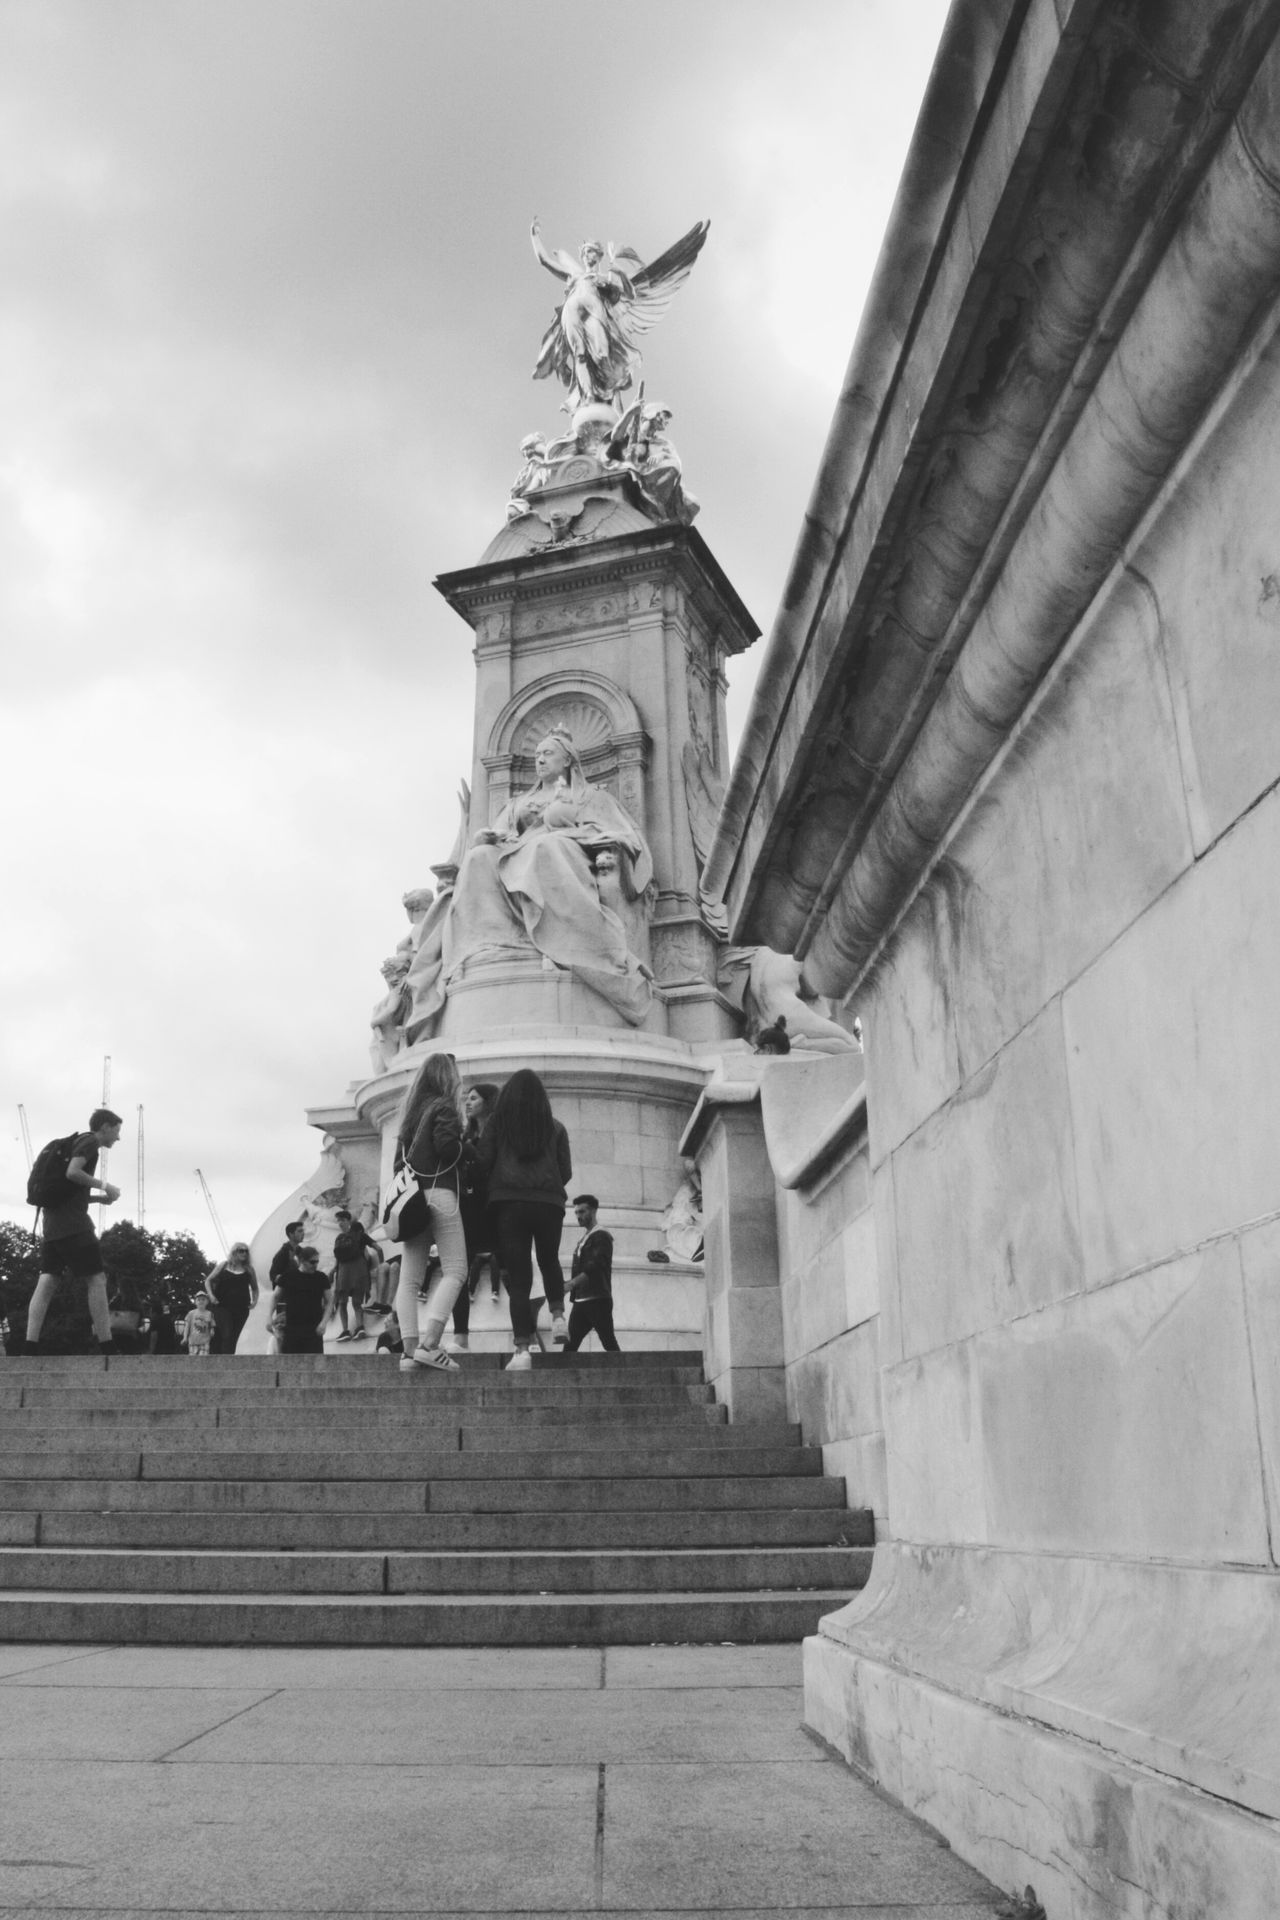 Statue Sculpture Travel Destinations Royal Person Low Angle View Buckingham Palace Queen Elizabeth  God Save The Queen The Queen London Uk EyeEm Travel Photography Neighborhood Map